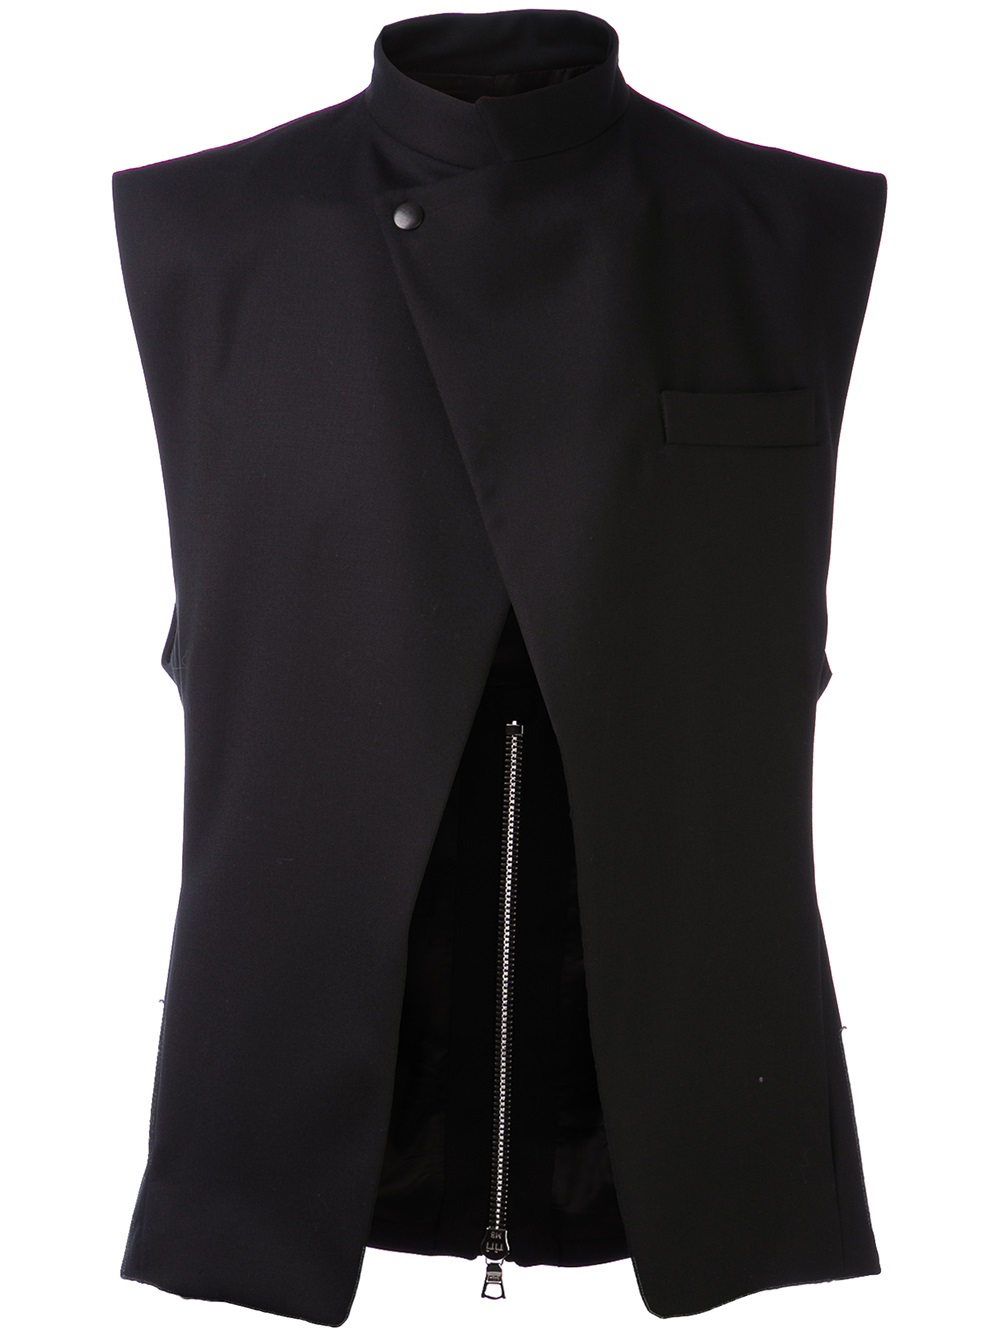 Public School Asymmetrical Suit Vest In Black For Men Lyst